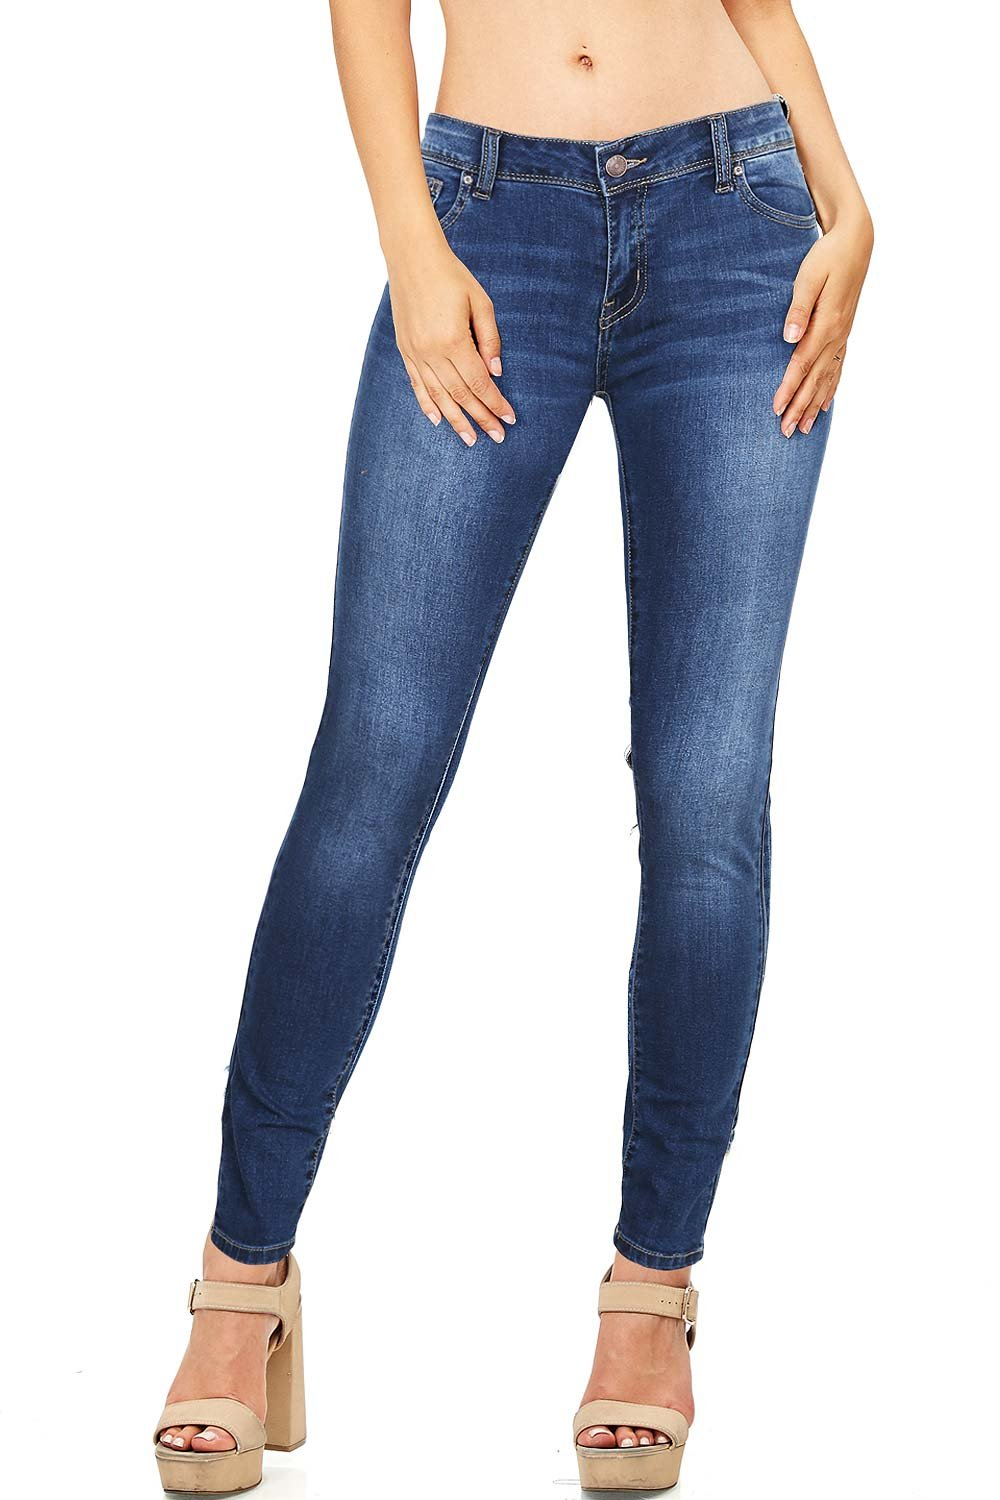 Wax Women's Juniors Basic Stretchy Fit Skinny Jeans (7, Med Denim)